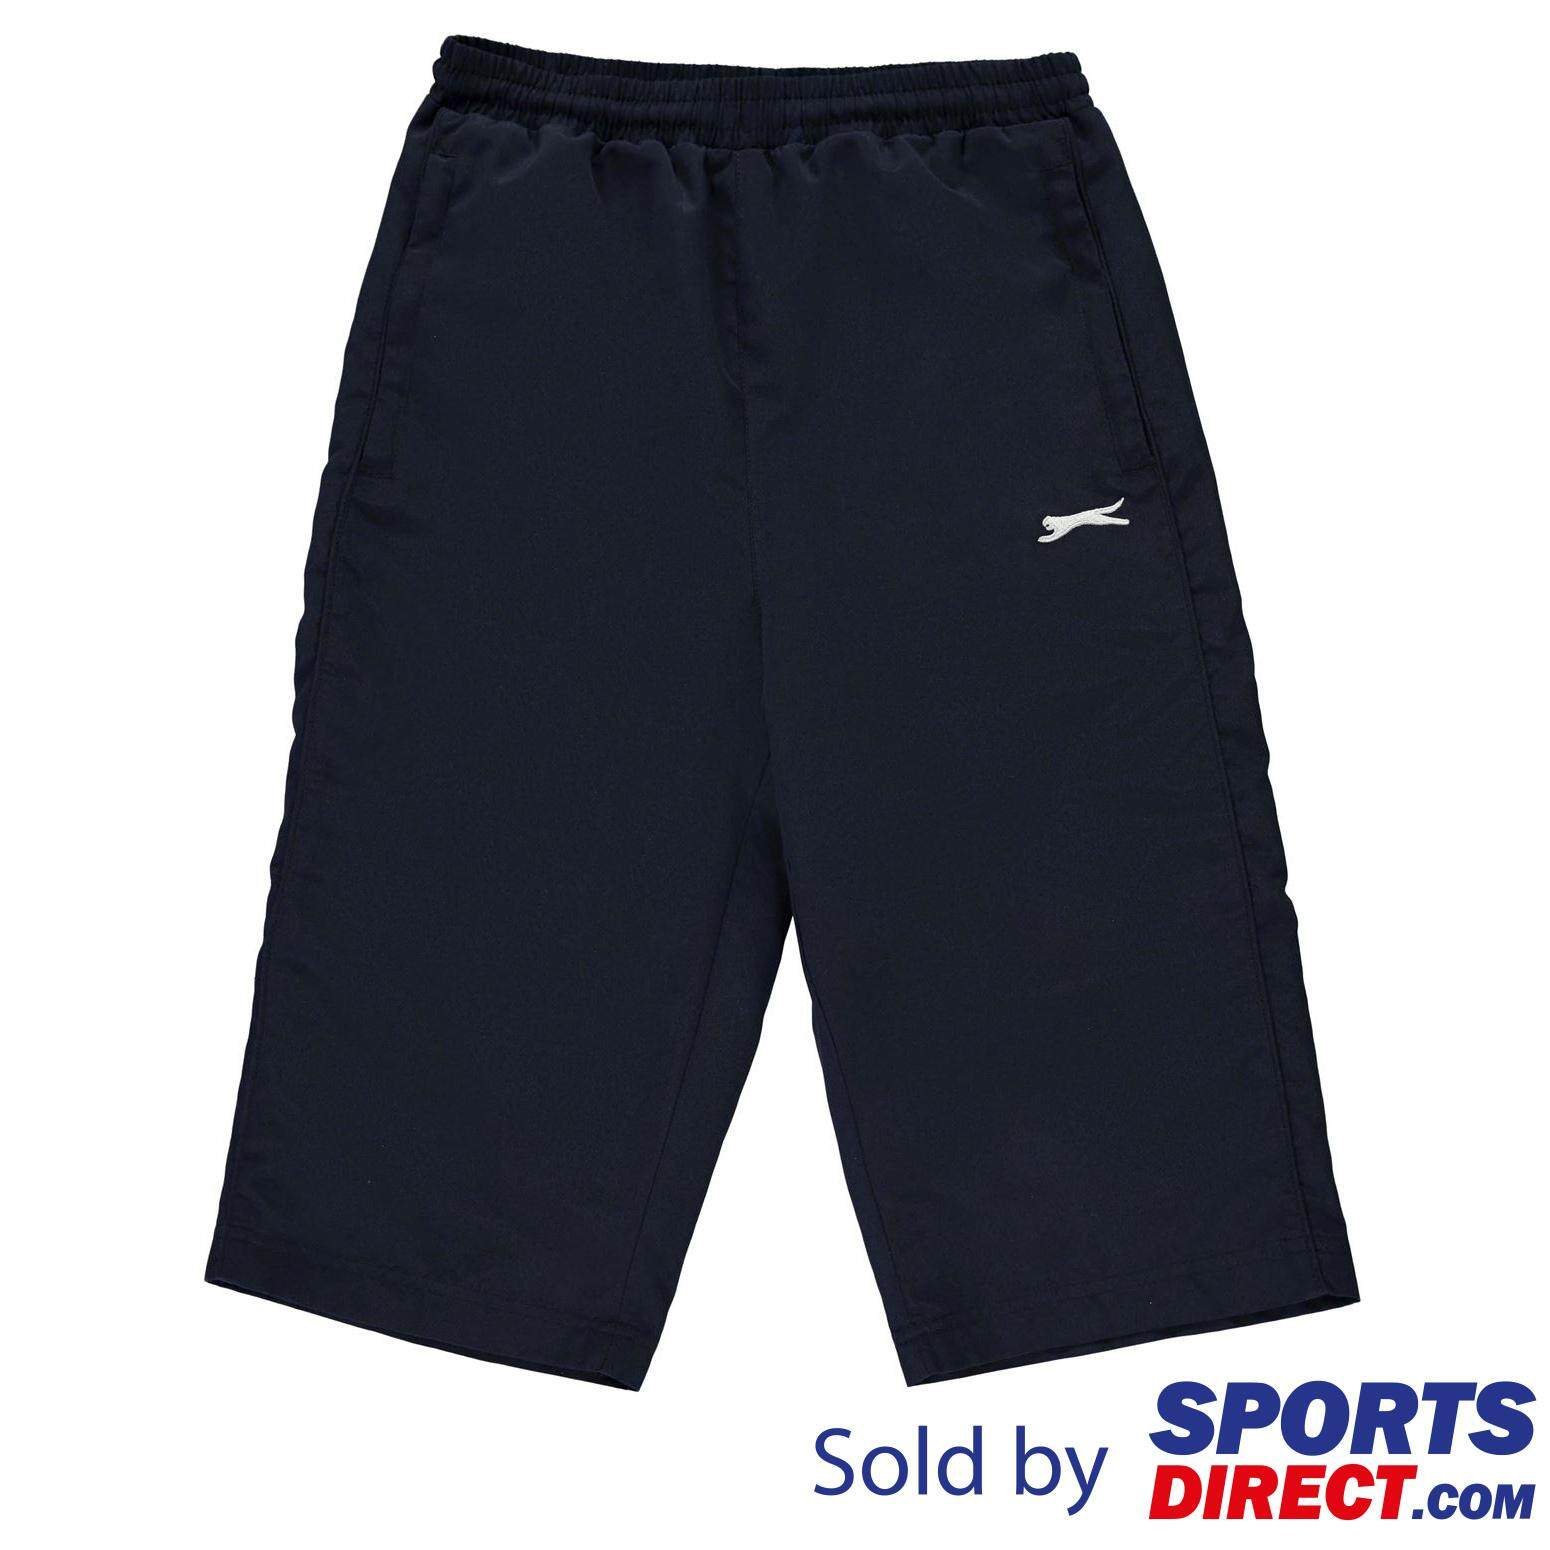 Slazenger Kids Boys Three Quarter Track Pants (navy) By Sports Direct Mst Sdn Bhd.